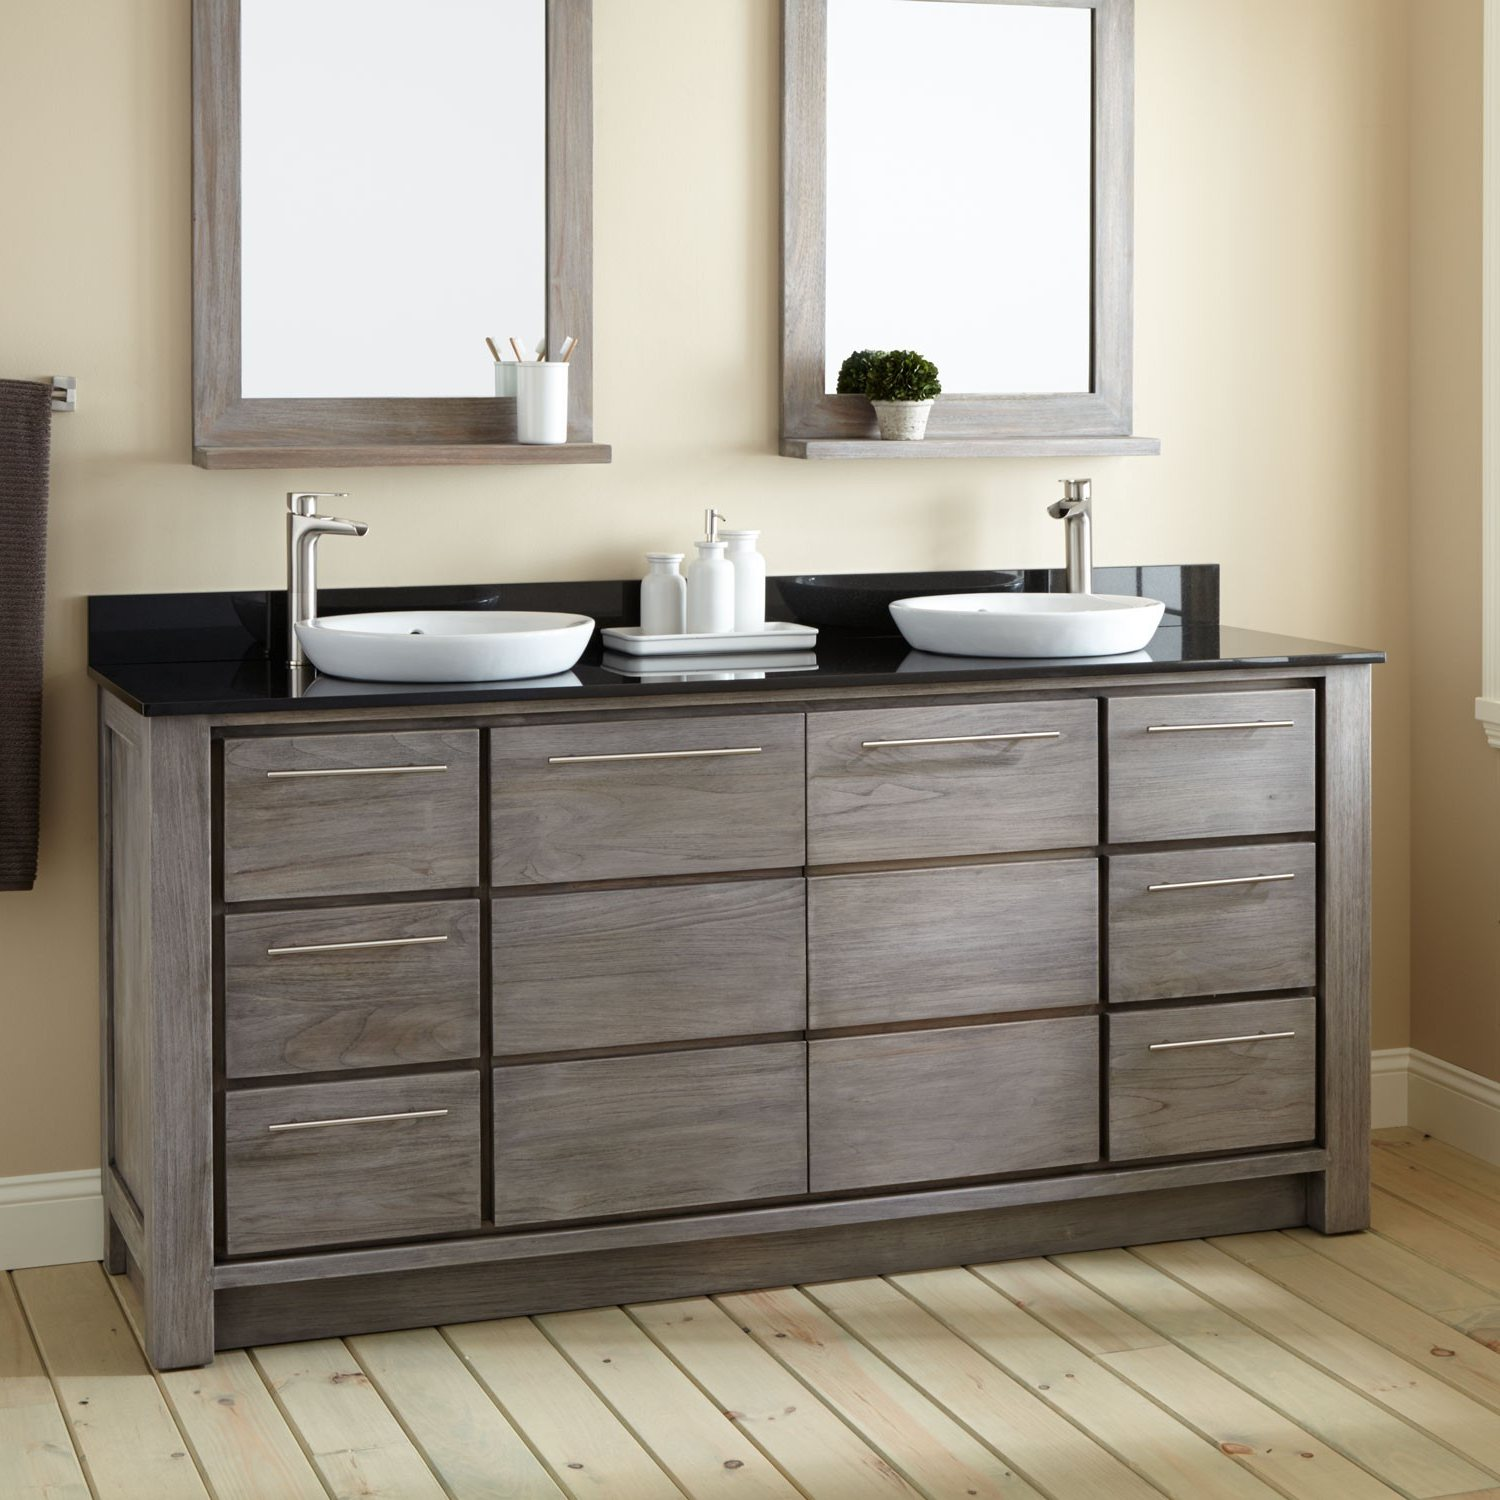 Image of: Country Rustic Double Vanity